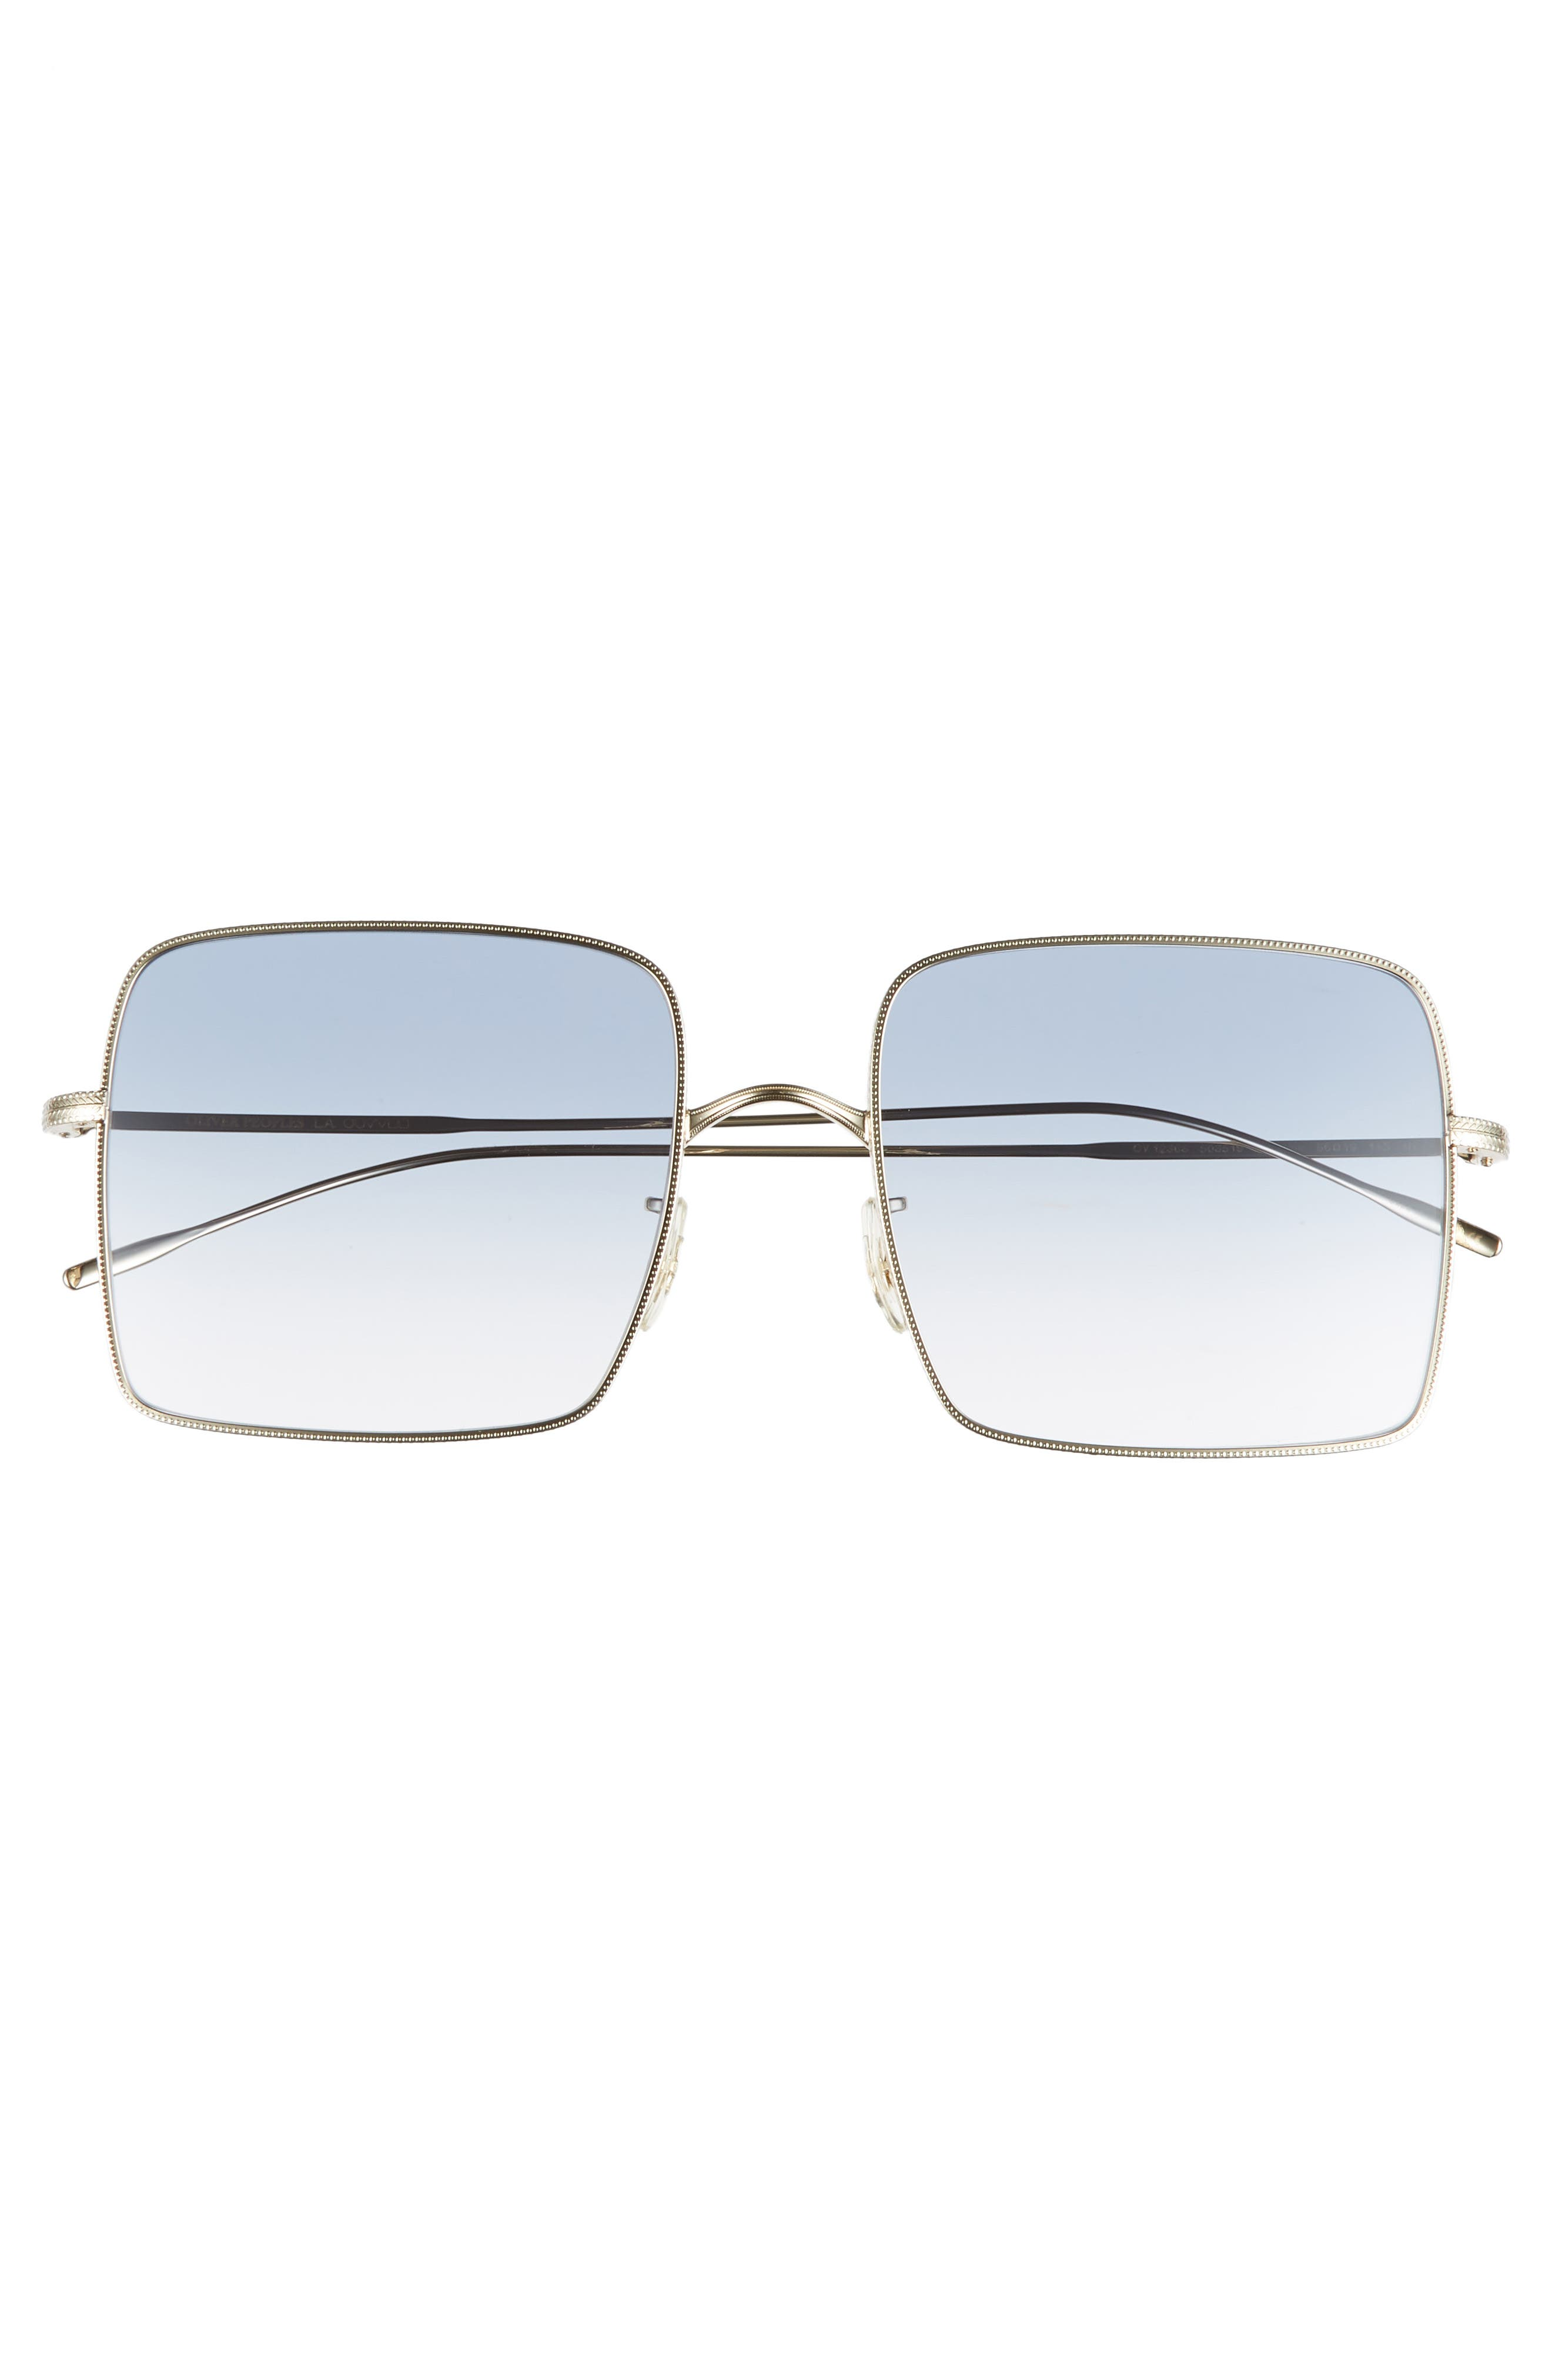 Rassine 56mm Sunglasses,                             Alternate thumbnail 3, color,                             SOFT GOLD BLUE